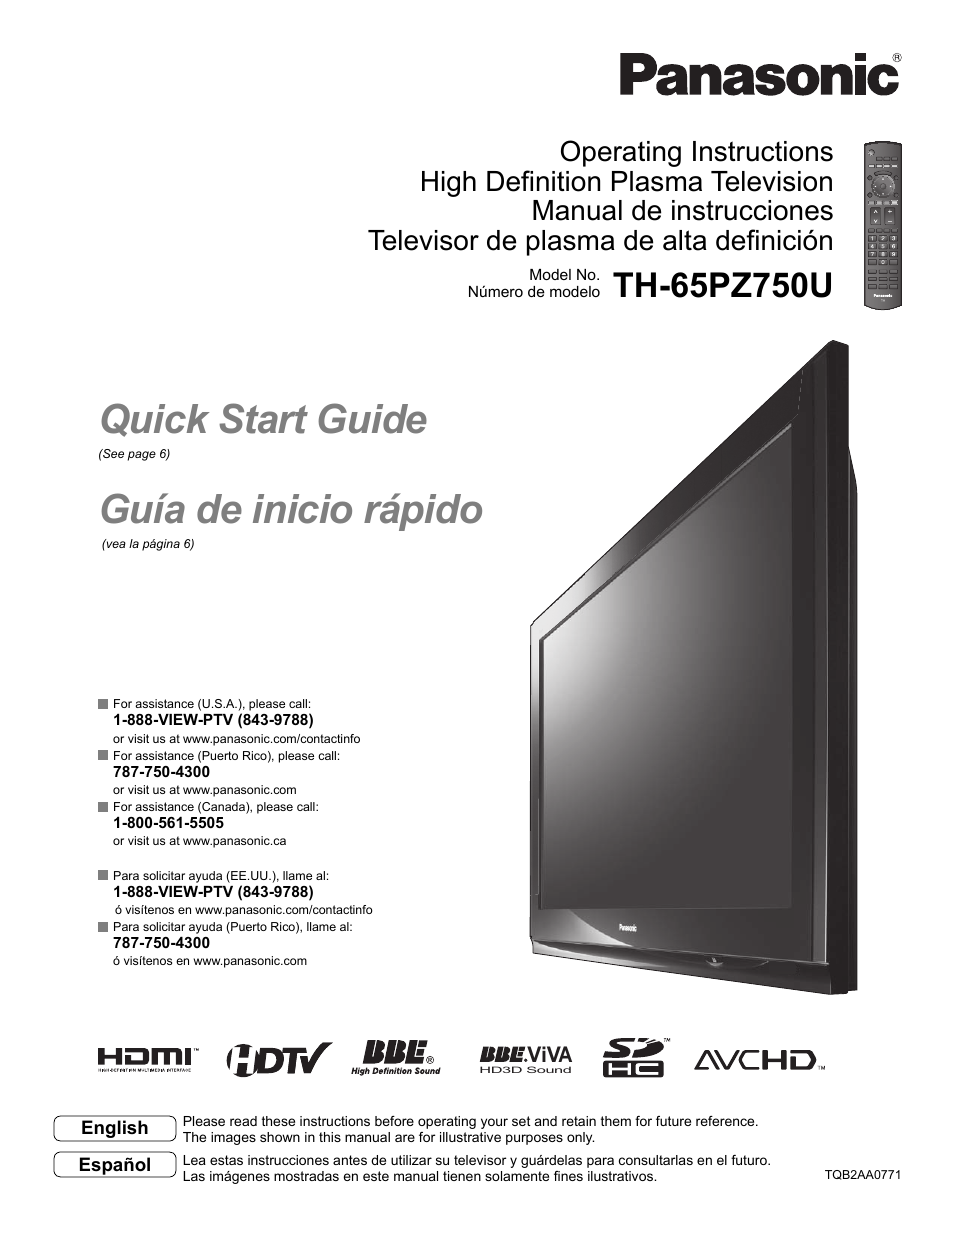 Panasonic VIVA TH-65PZ750U User Manual | 73 pages